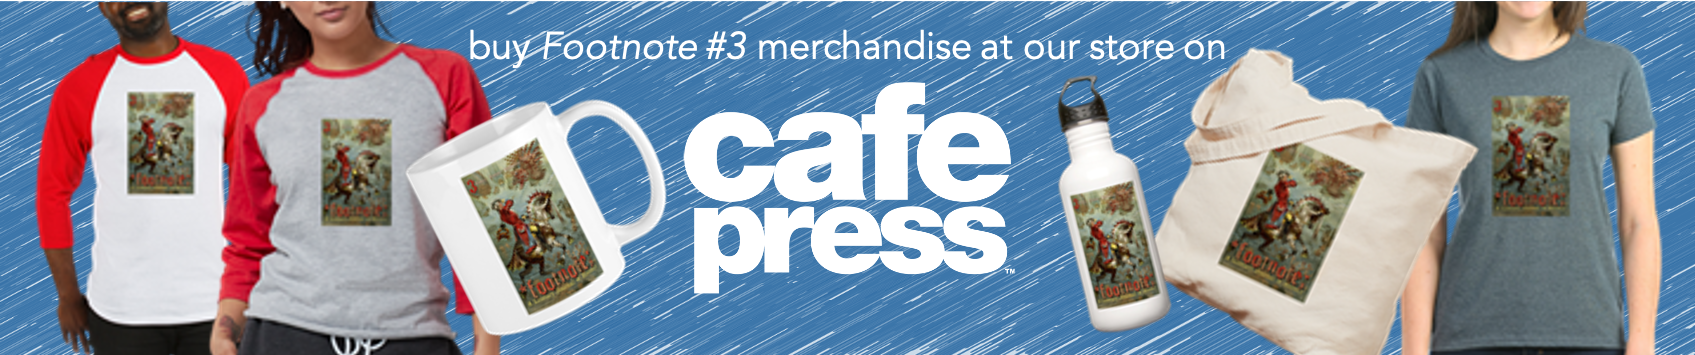 Buy Footnote 3 merchandise at Cafe Press